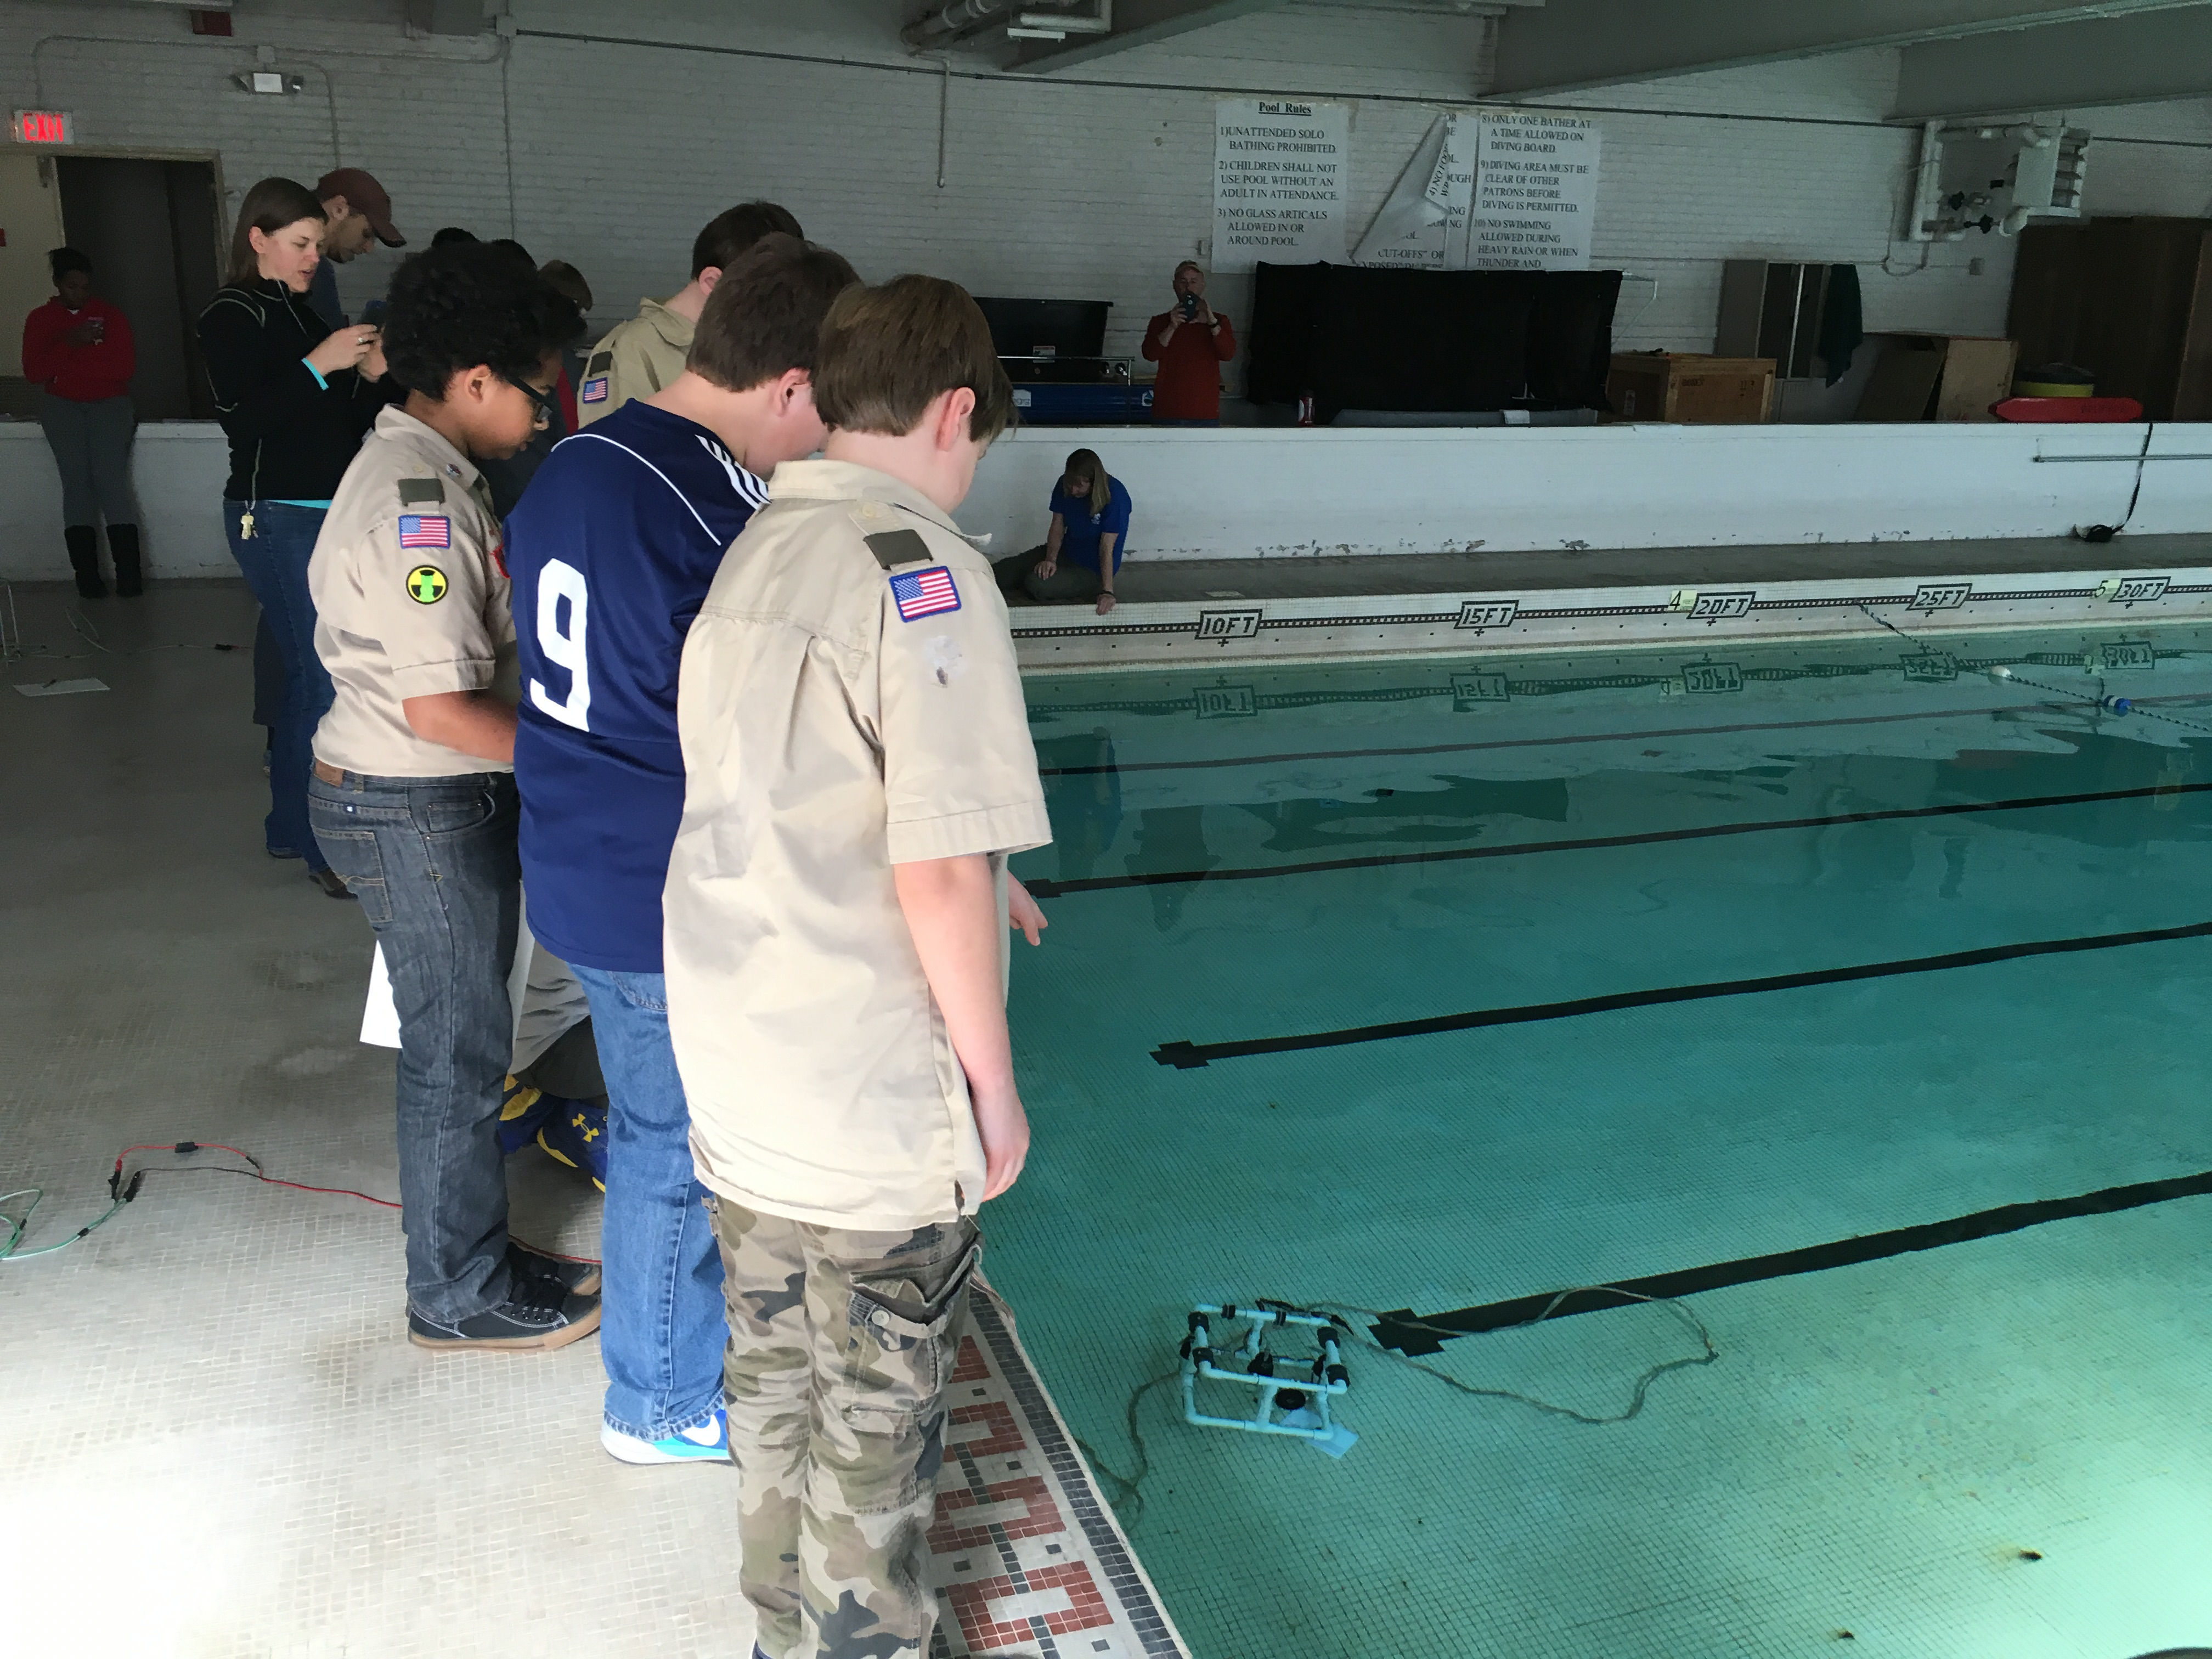 <div style='color:#000000;'><br /><br /><h2>2016 Boy Scouts Advancarama. Scouts driving model ROVs (remotely operated vehicles) to learn about bottom topography.</h2>(C)&nbsp;ECOGIG</div>